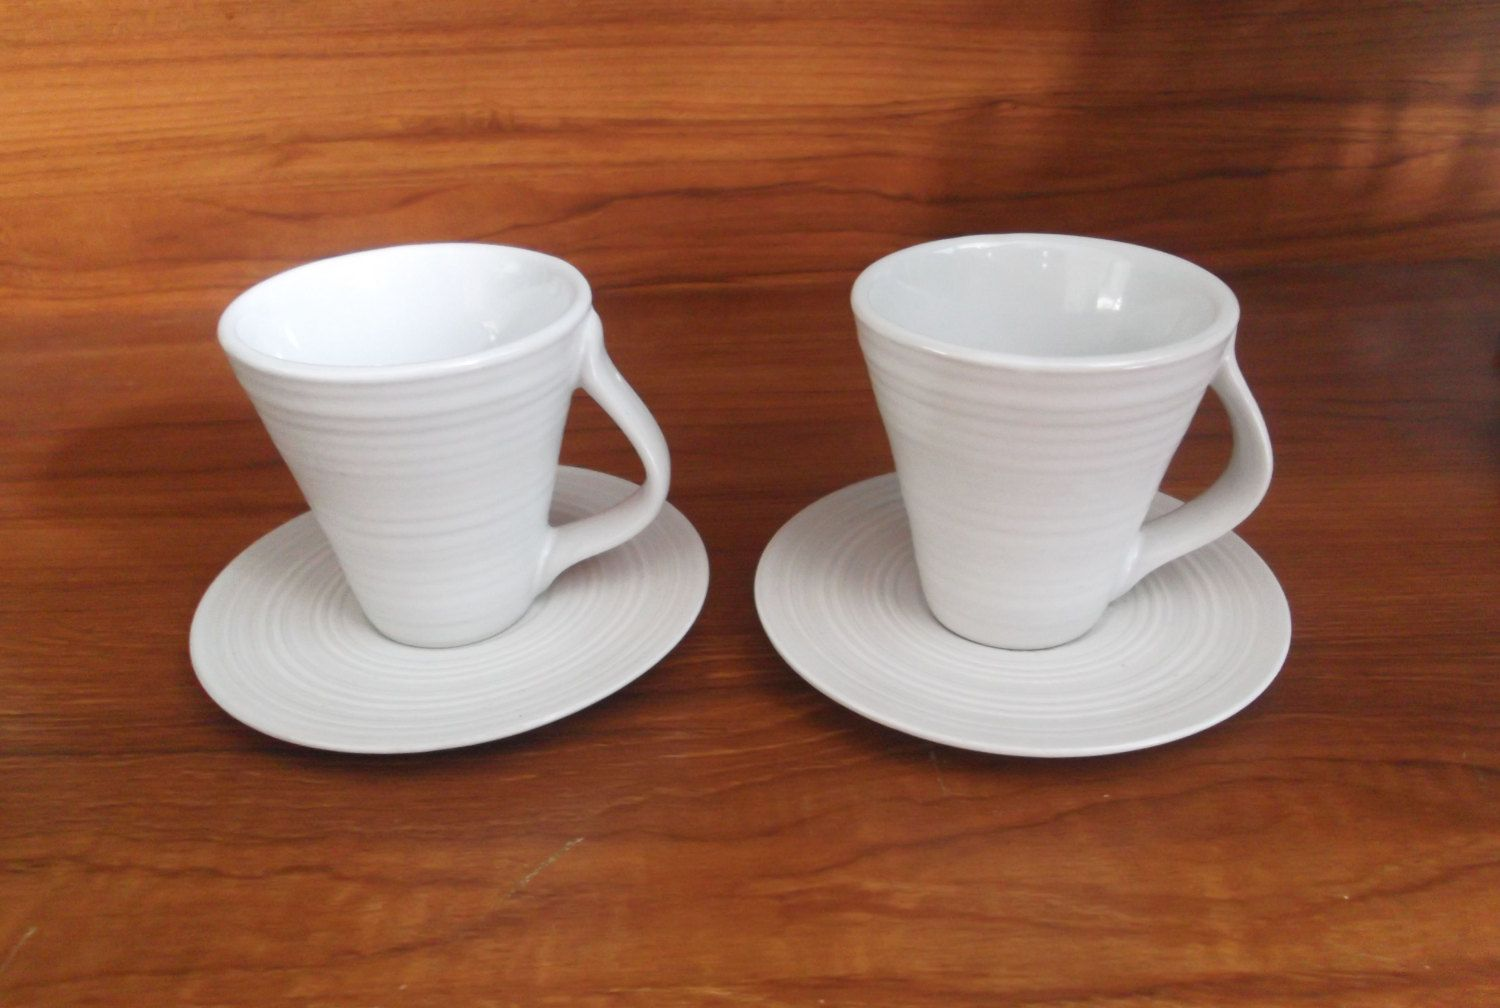 Not Defteri: 2 White espresso cups and saucers